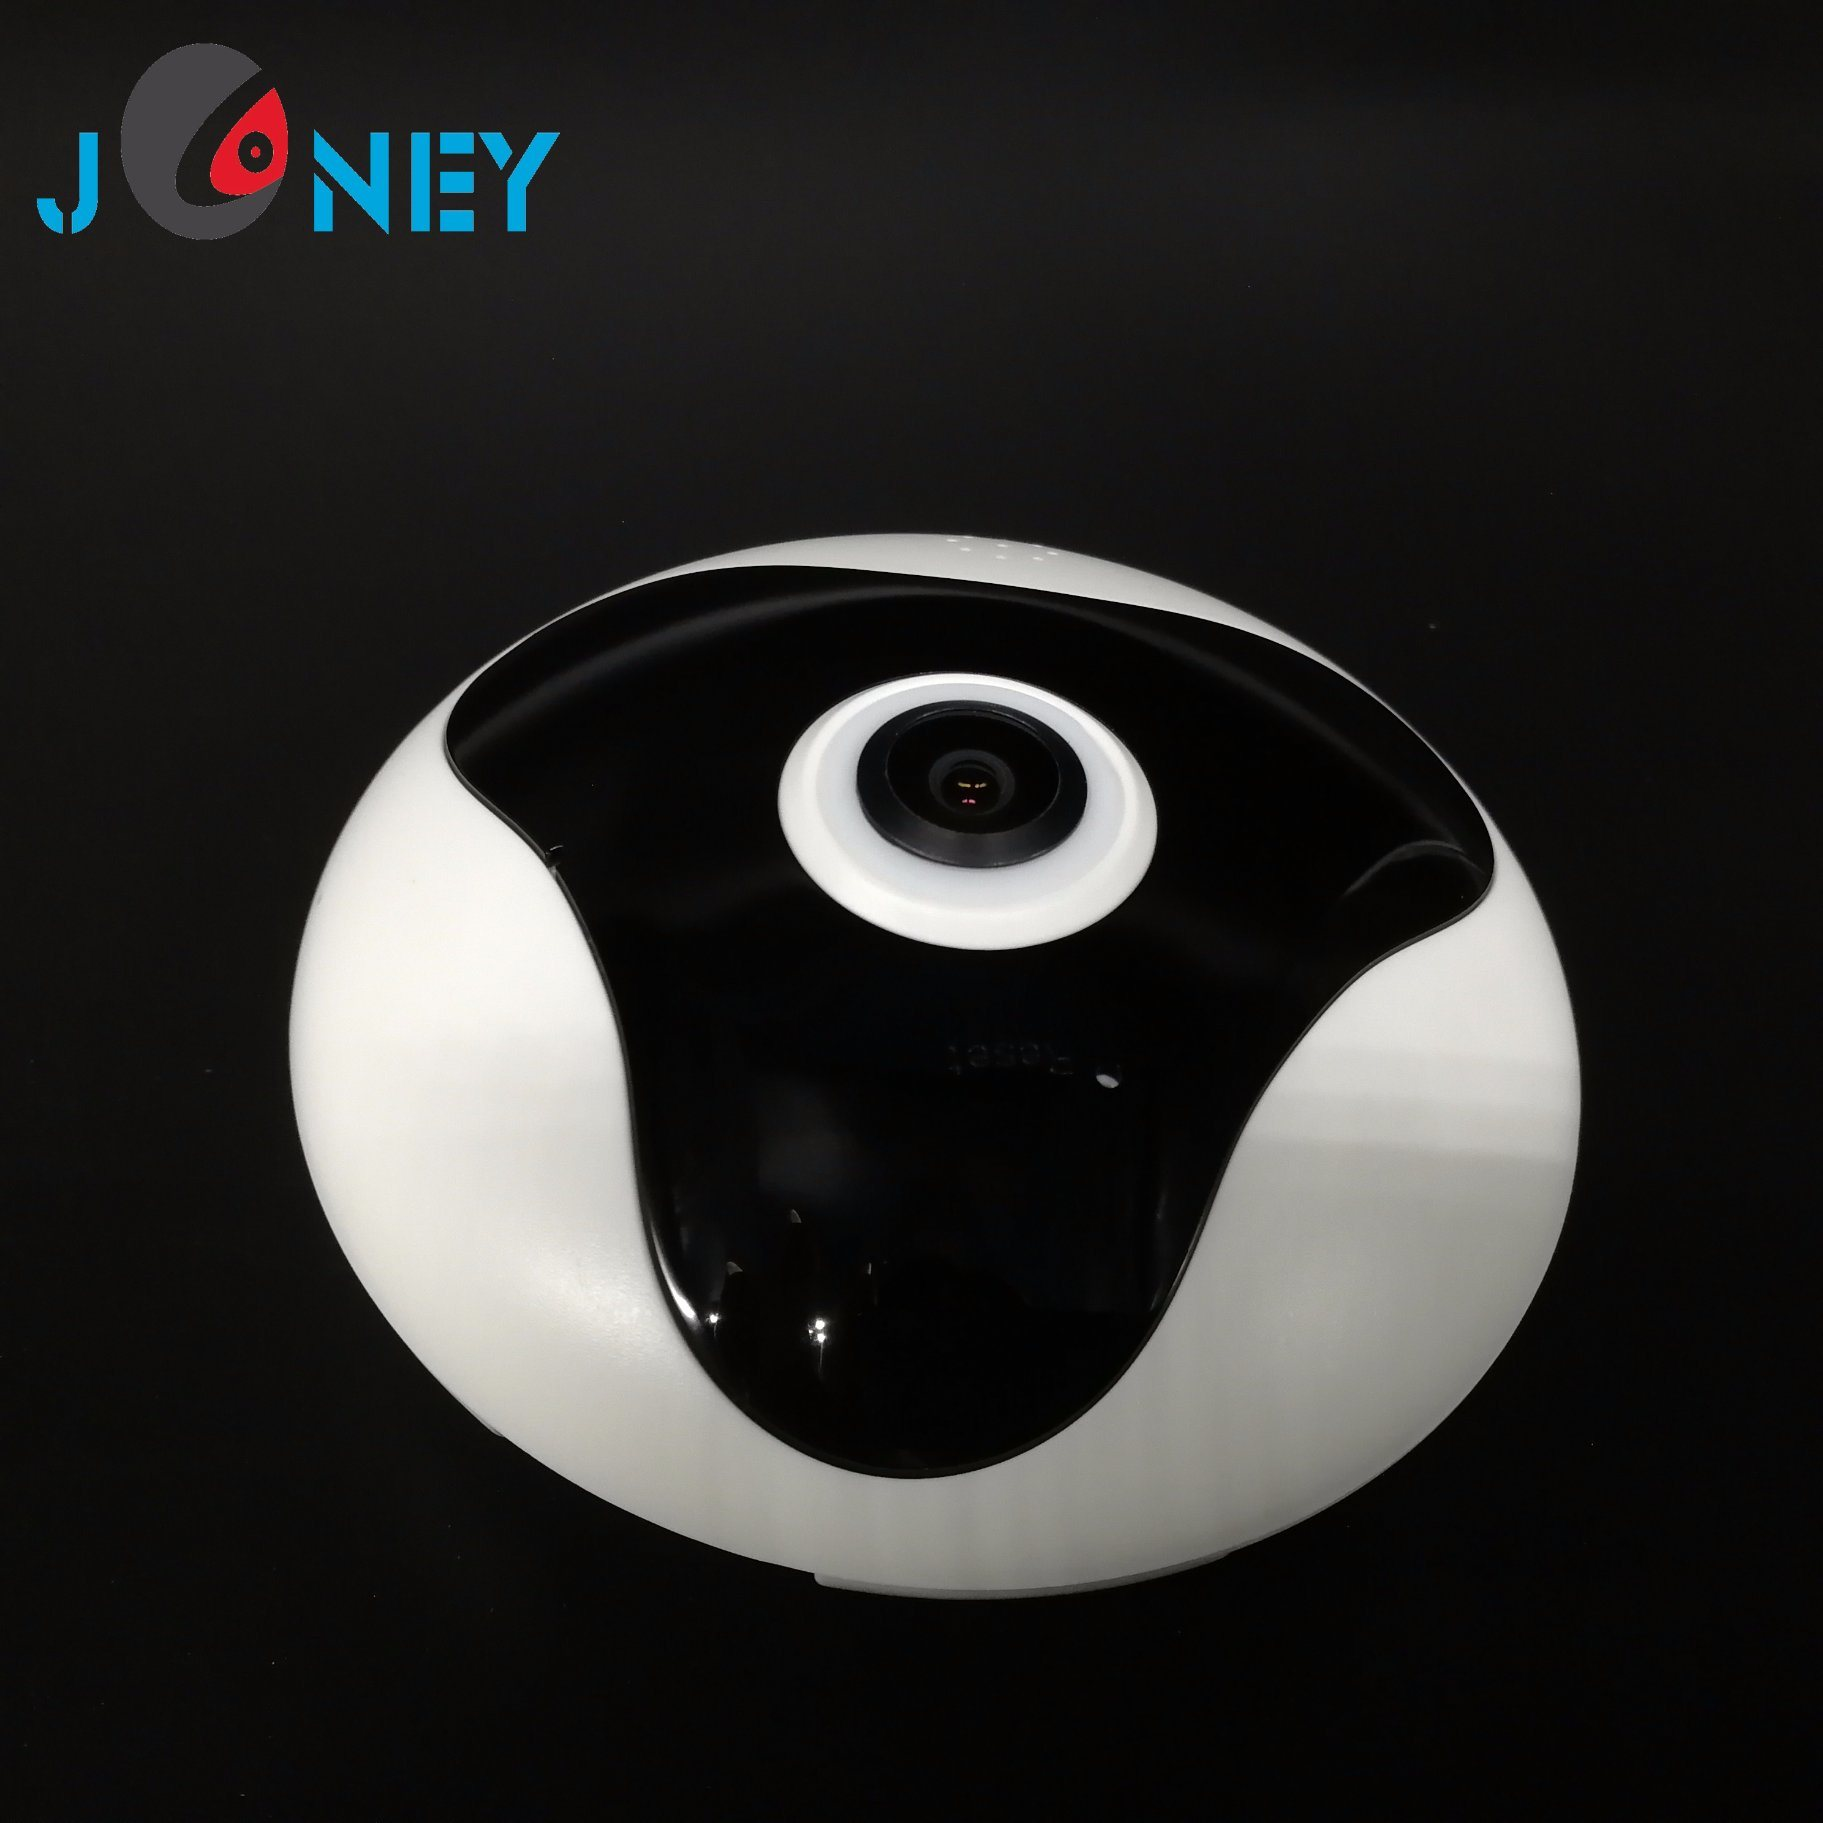 360 Degree Fisheye Panoramic Camera HD Wireless Vr Panorama HD IP Camera P2p Indoor Security WiFi Camera